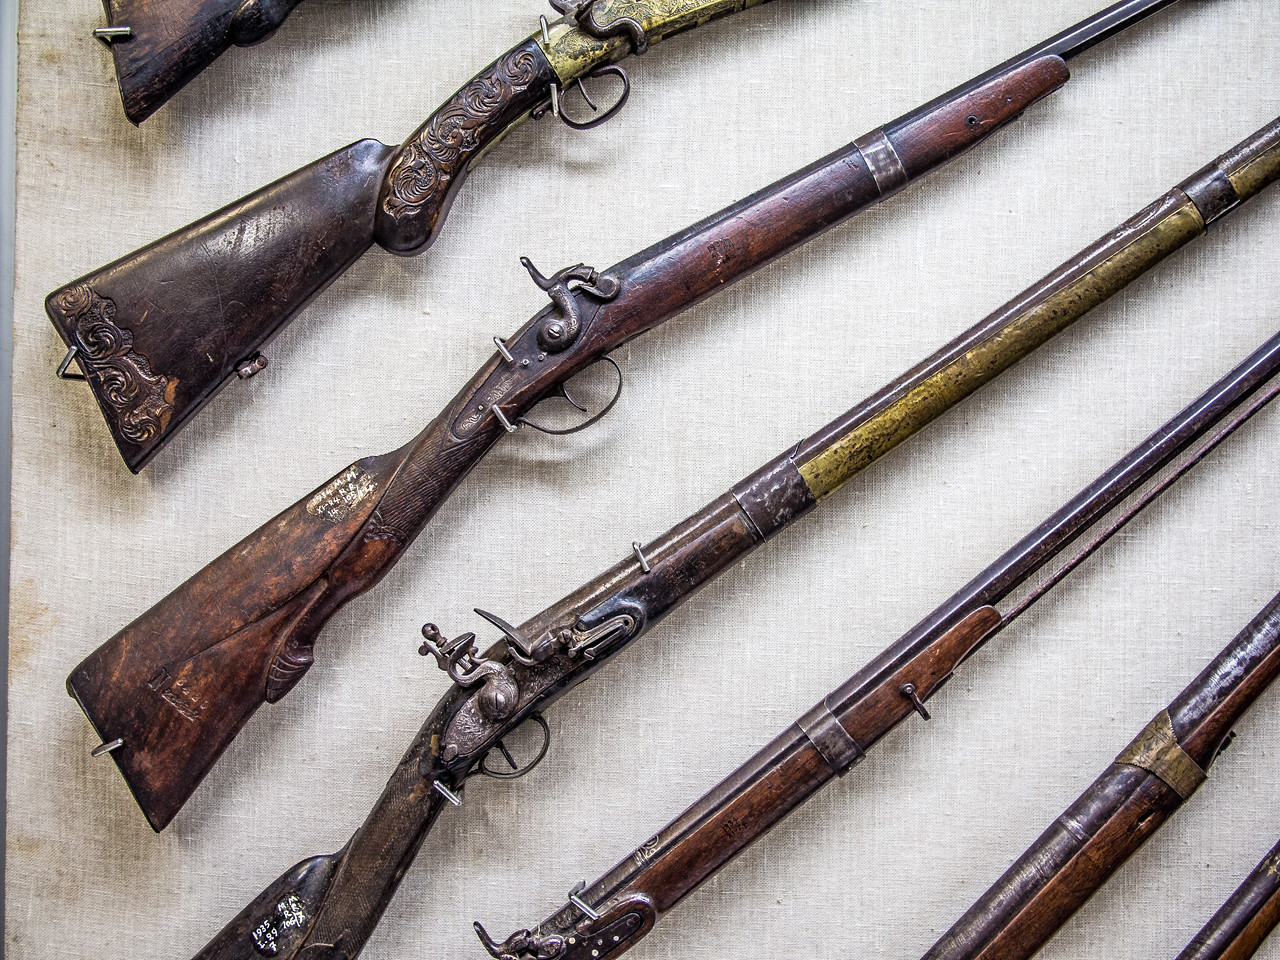 Rifles in a museum (Limassol, Cyprus)